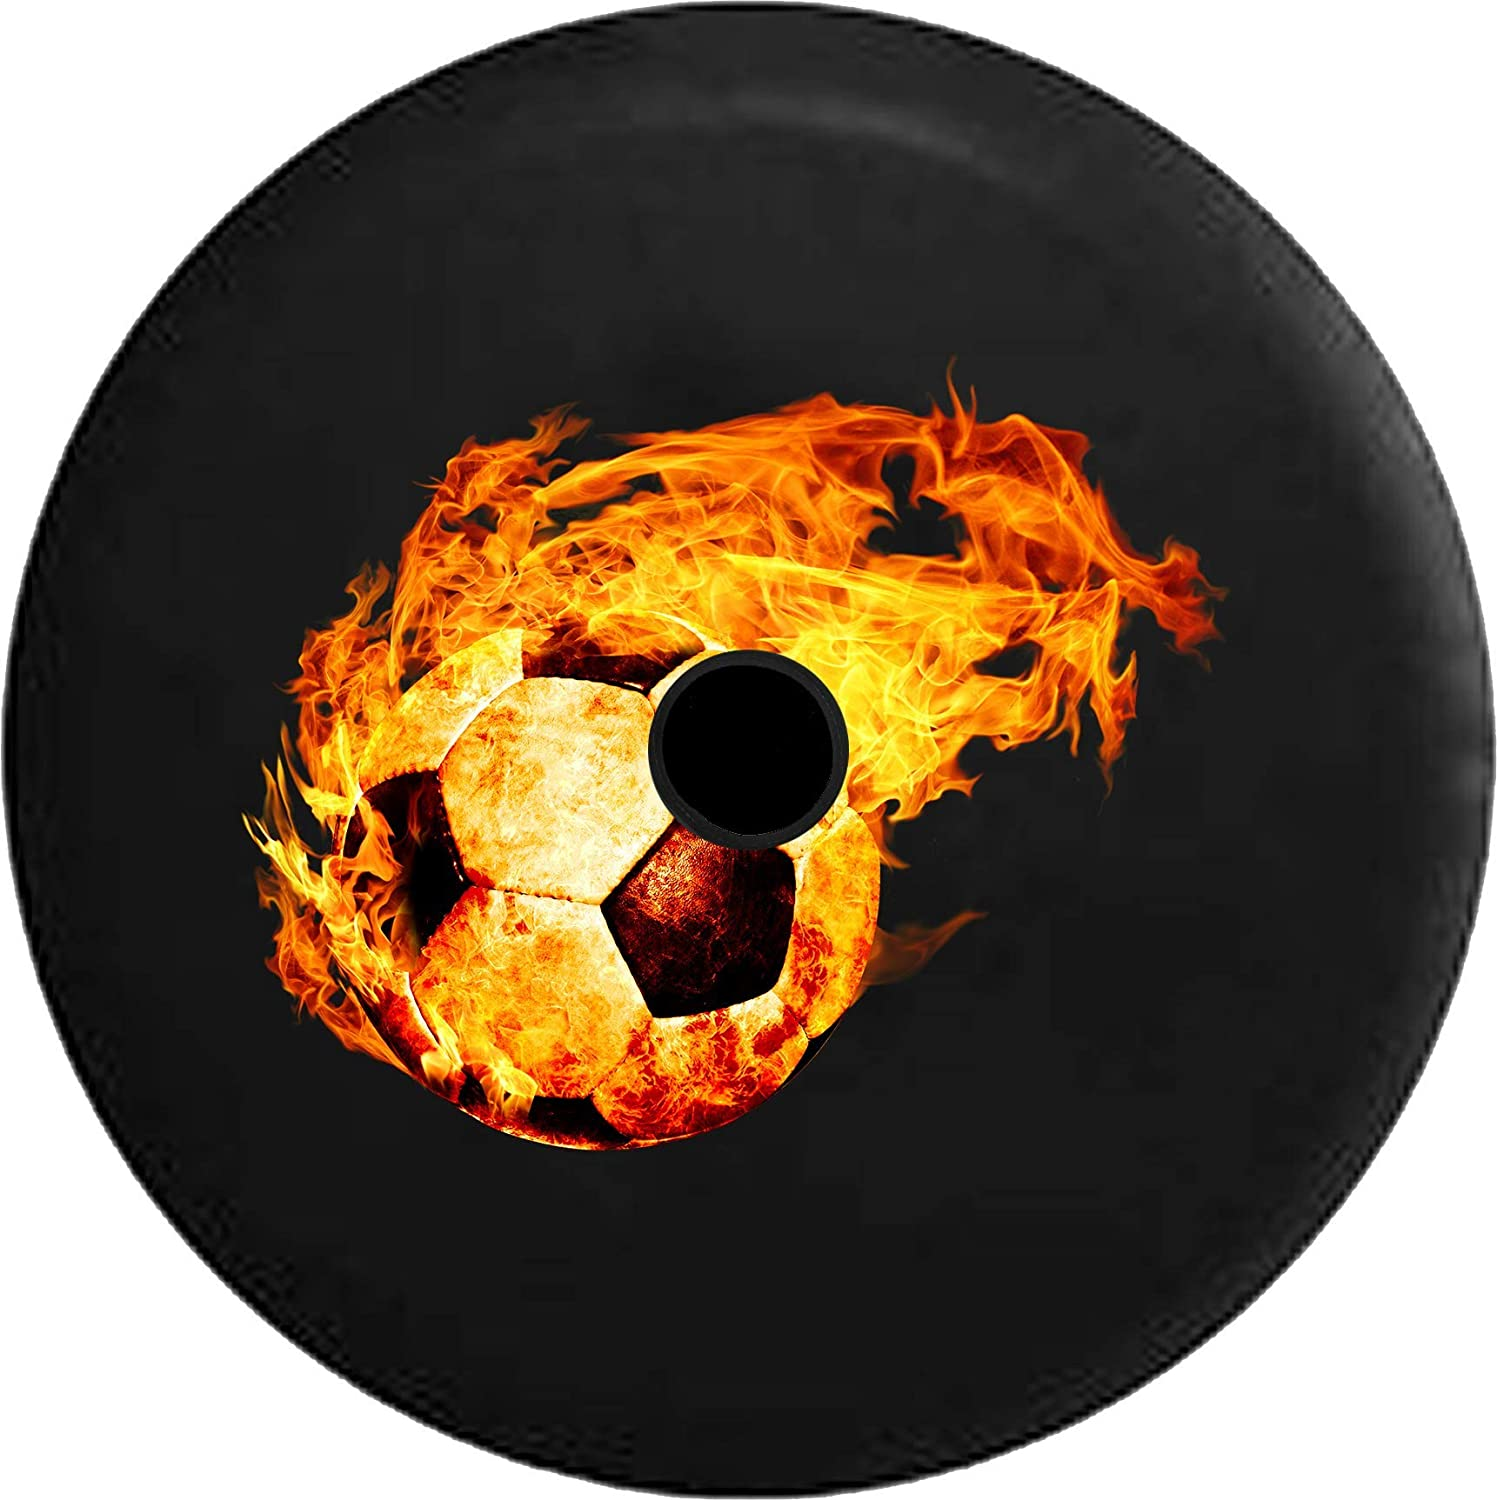 Pike Outdoors JL Series Spare Tire Cover Backup Camera Hole Jeep Fire Flames Orange Red Black 32 in